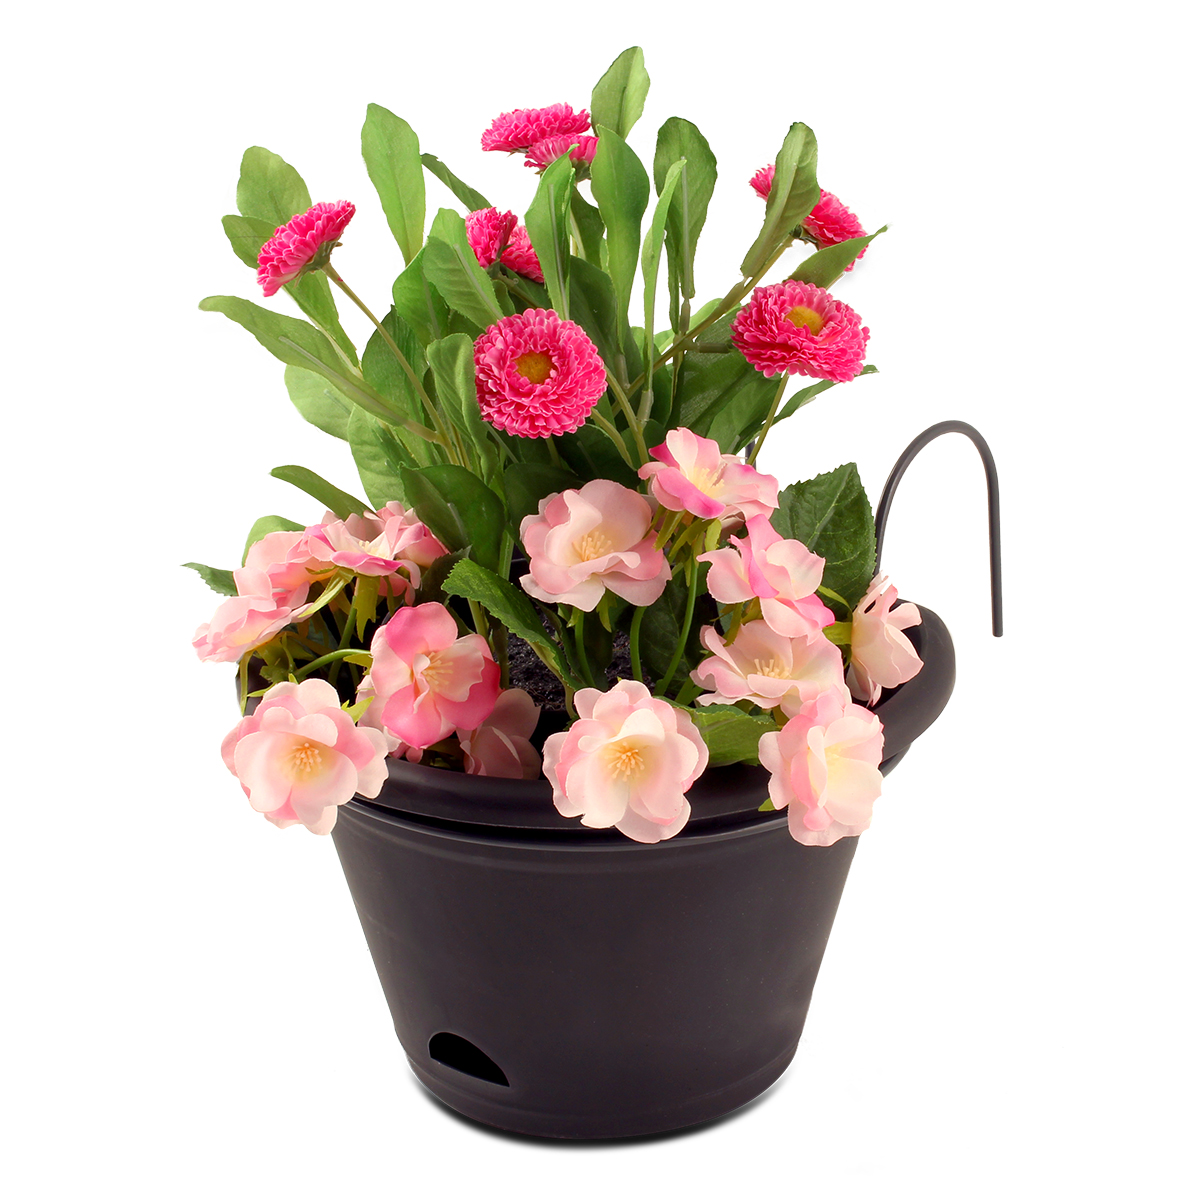 18424 Terrace Planter Charcoal with flowers